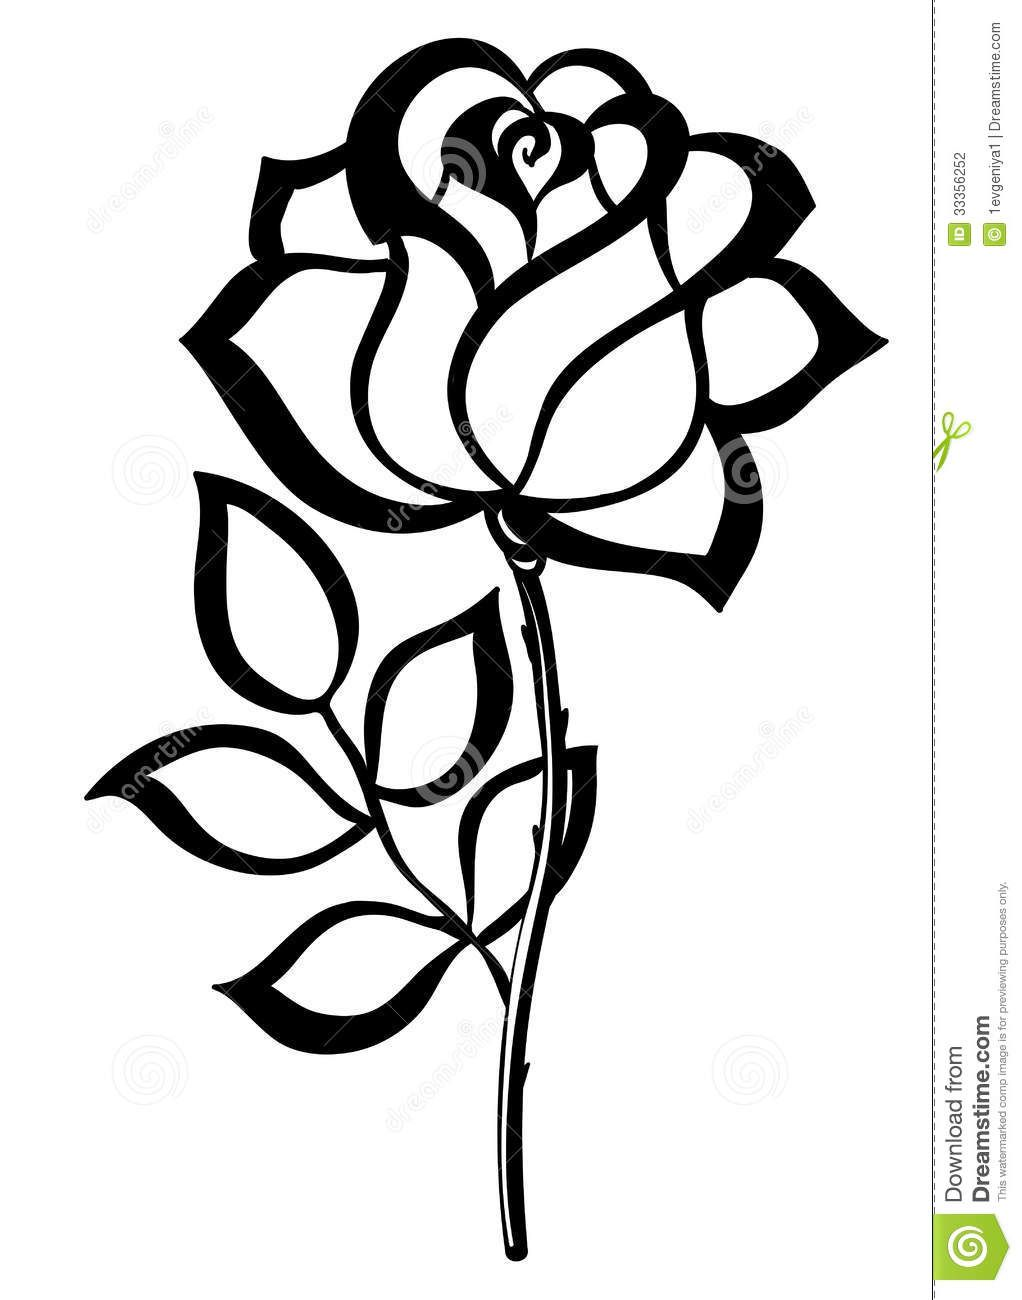 simple rose outline.